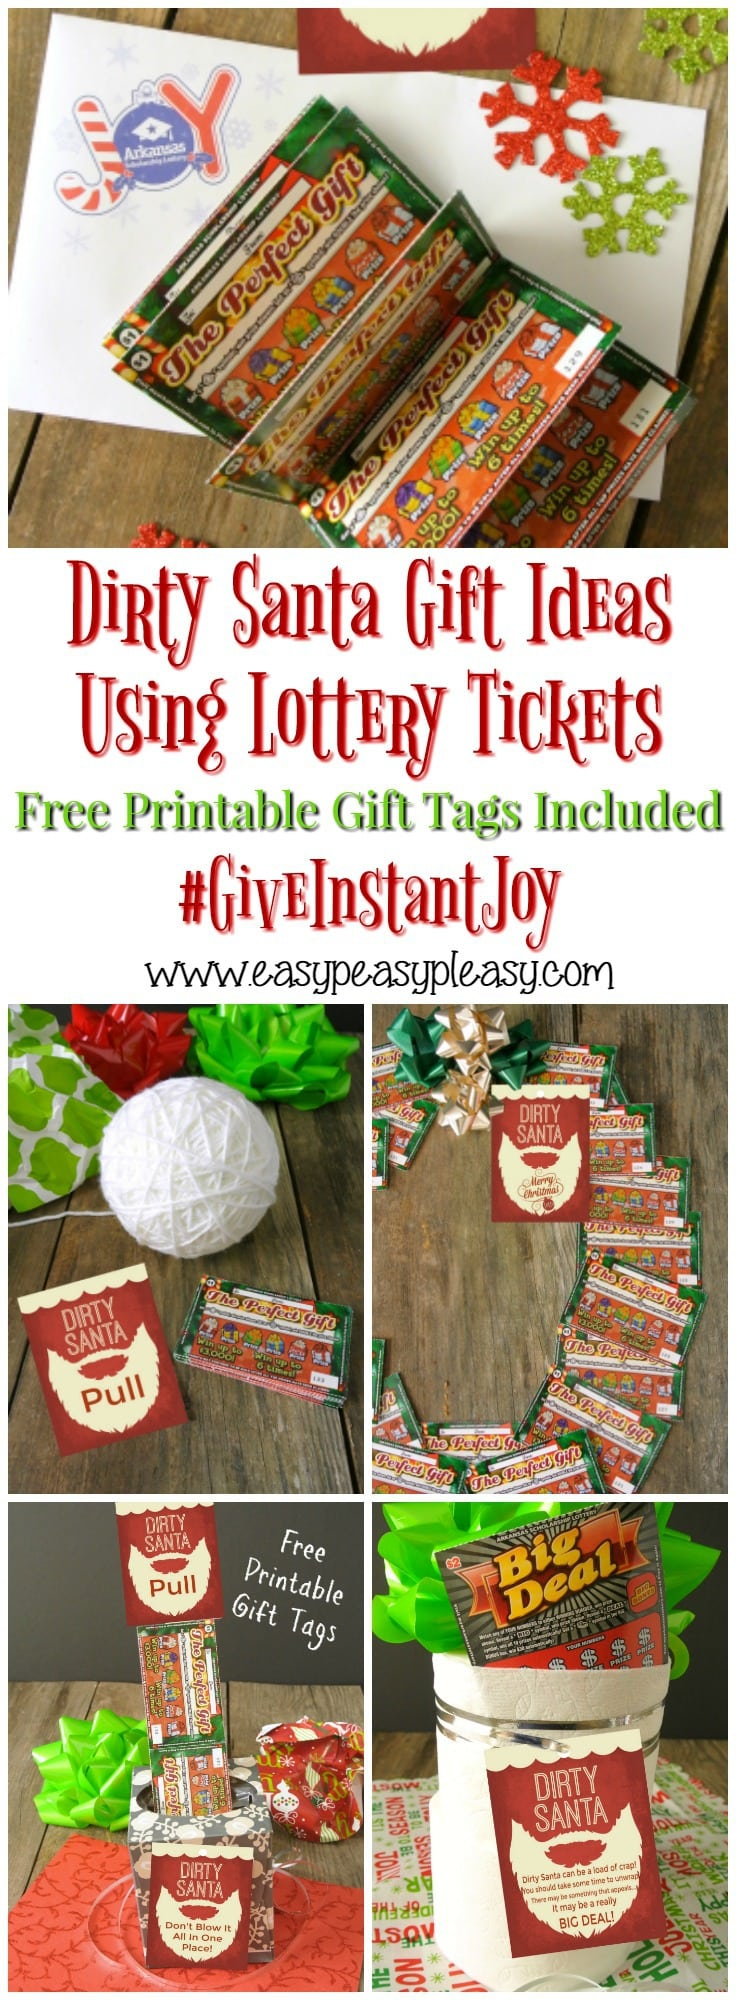 Use Lottery Tickets to give the best Dirty Santa Gifts. Grab some free printable gift tags and give the gift that keeps on giving. Arkansas Scholarship Lottery tickets Give Instant Joy!